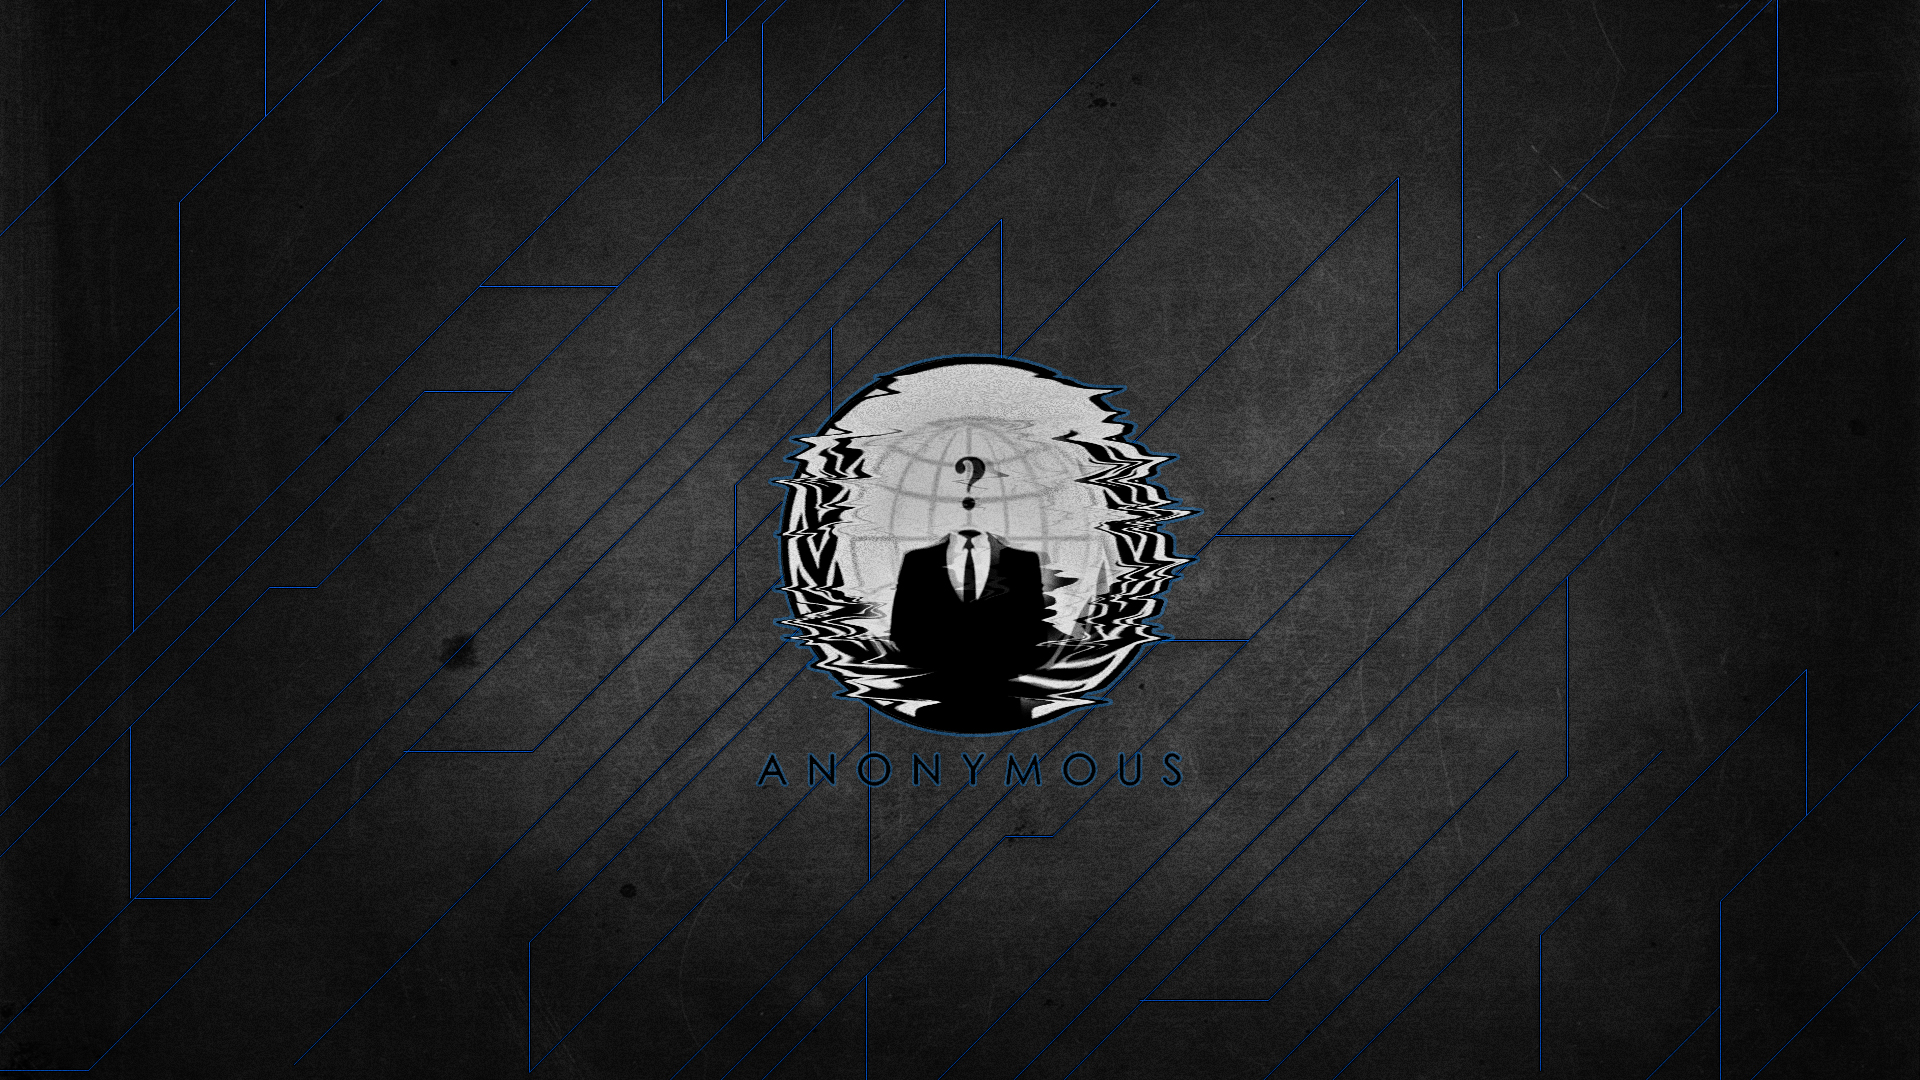 anonymous wallpaper wallpapers art samuels graphics 1920x1080